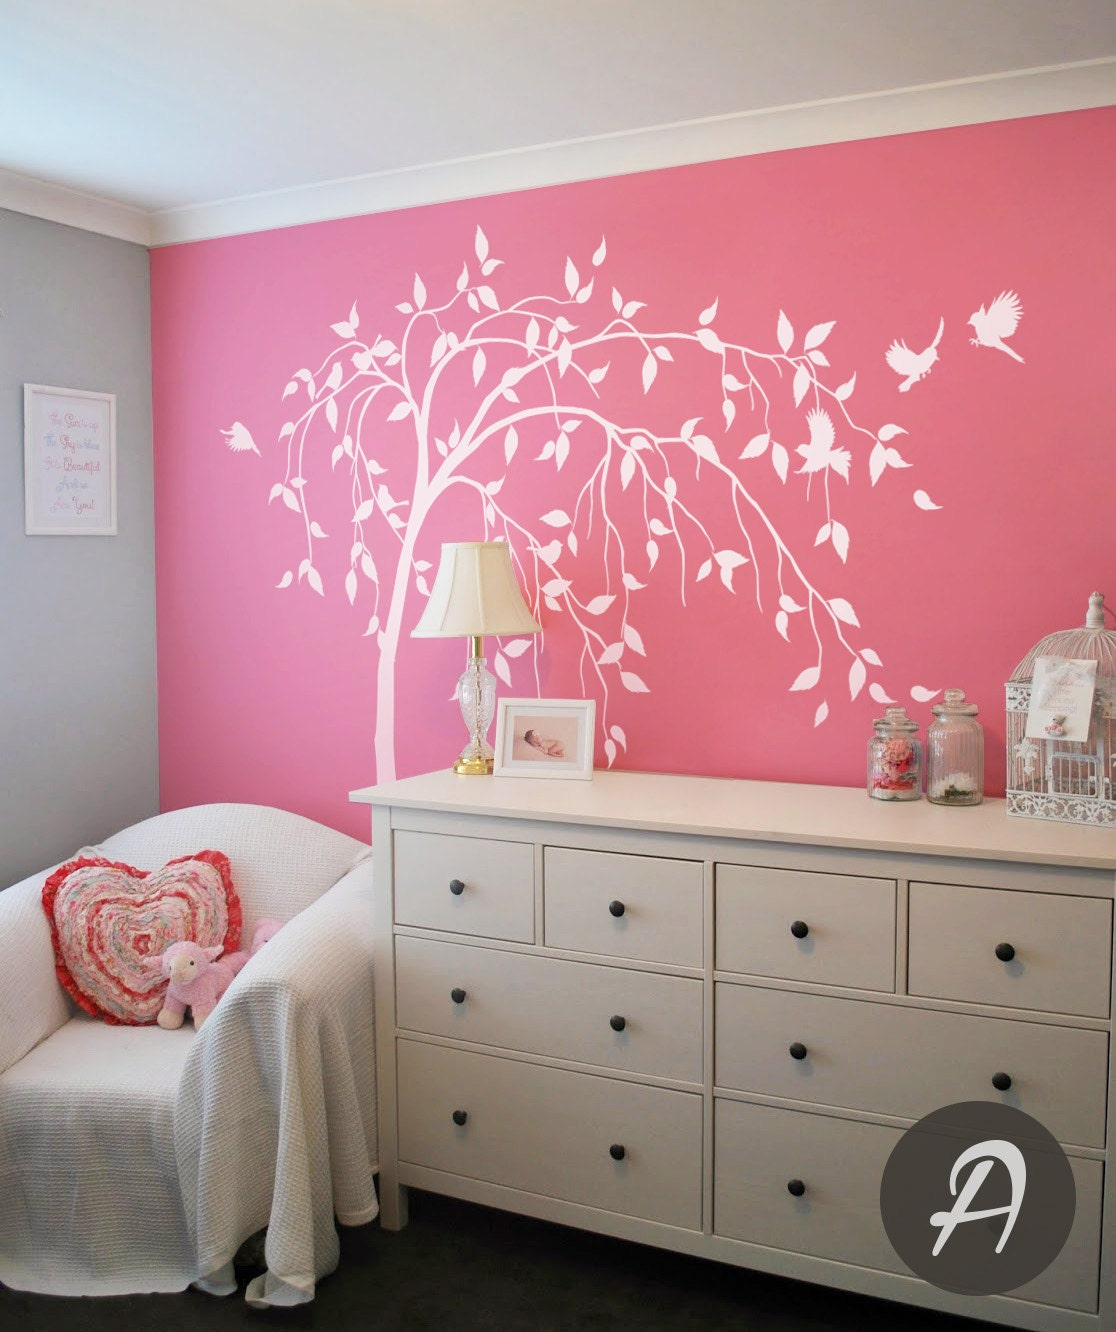 Willow Tree Decal Large Tree Decal White Tree Decal Temporary